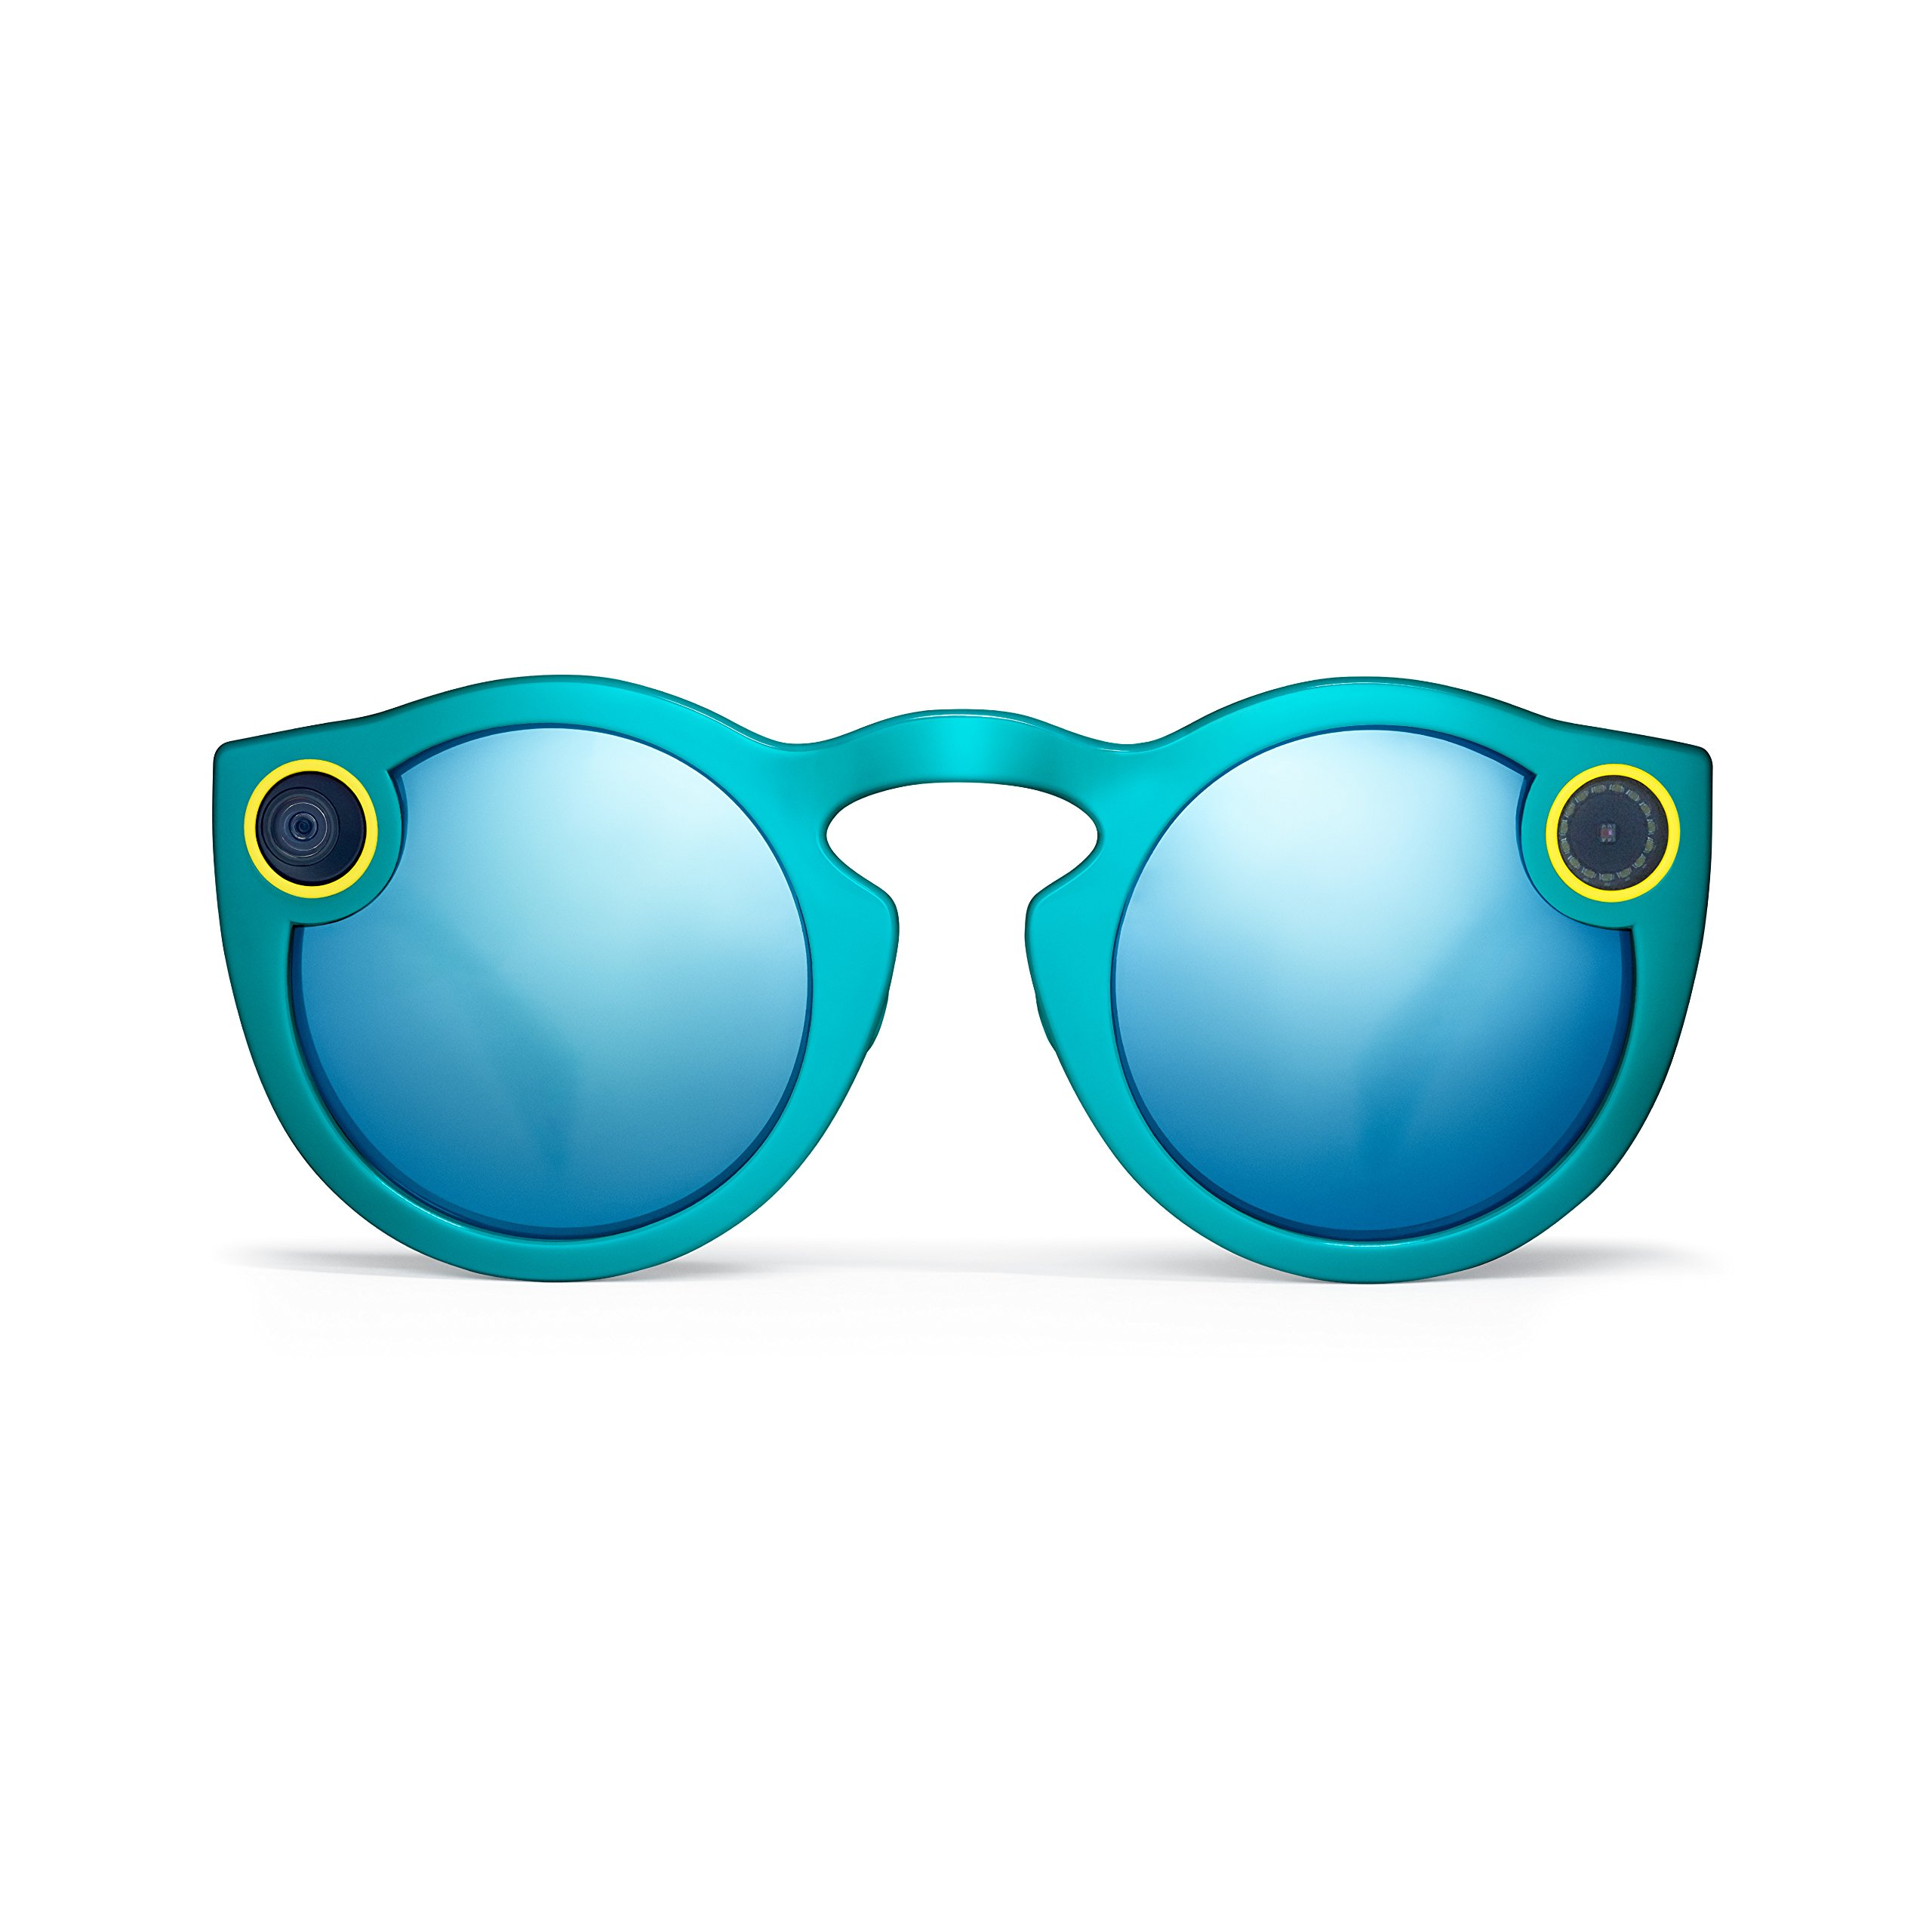 Spectacles - Sunglasses for Snapchat by Snap Inc.